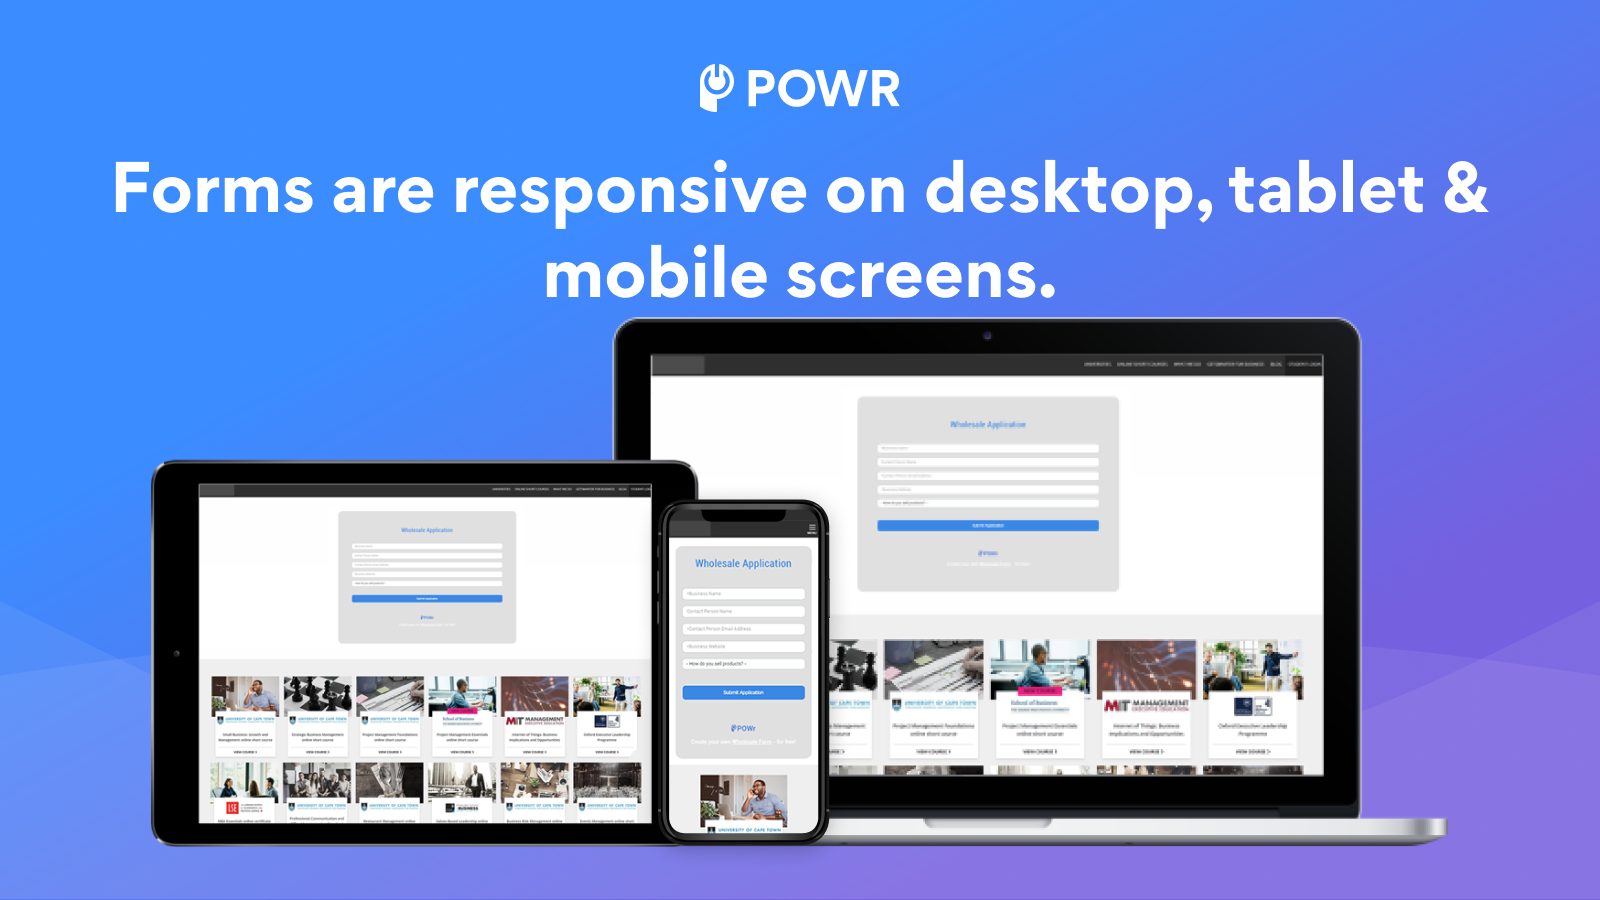 Your form is responsive on any device.